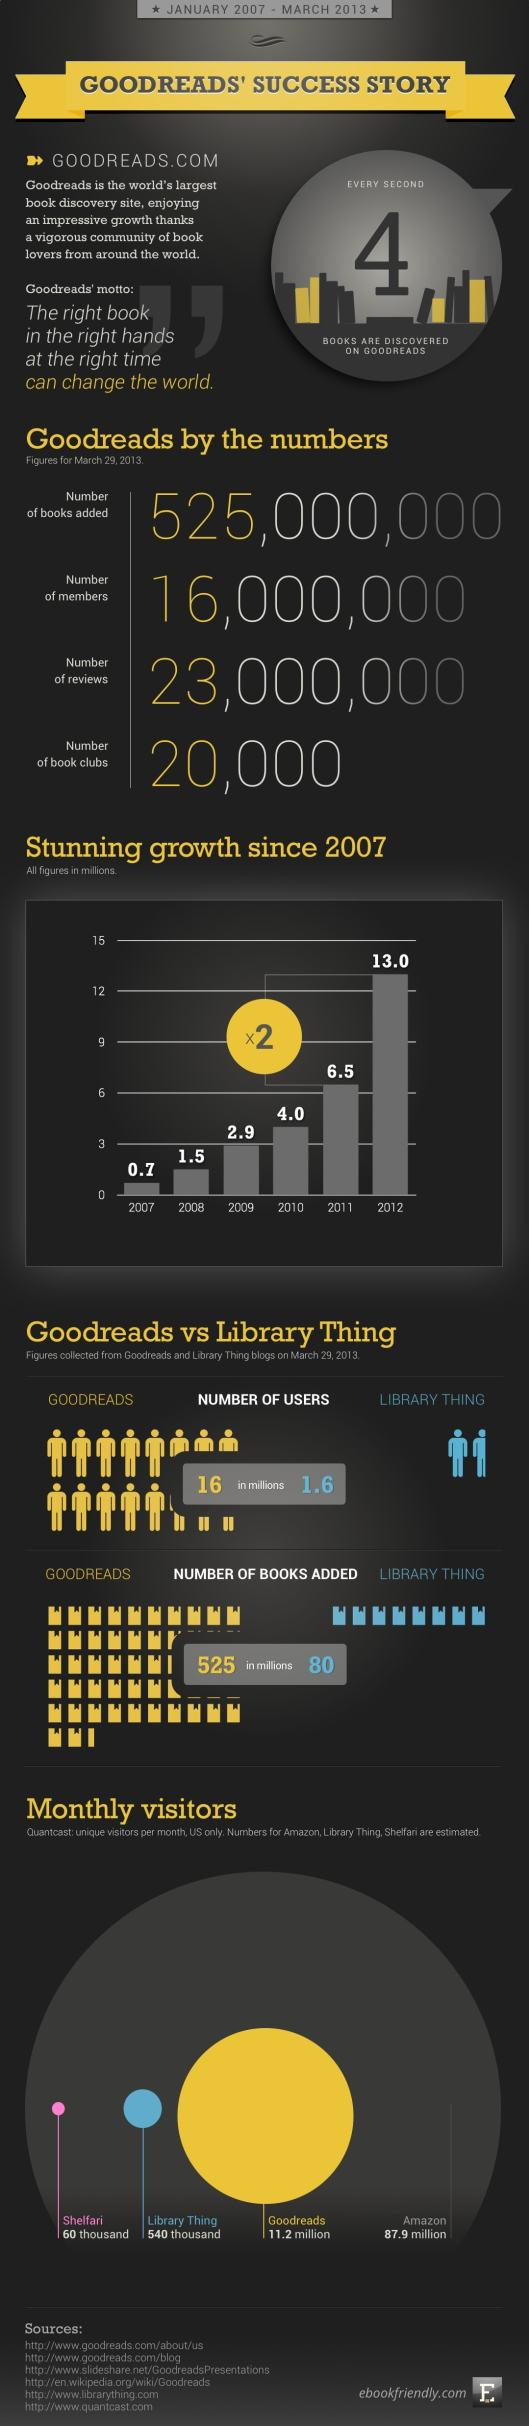 Infographic: Goodreads' Success Story e-Reading Hardware Infographic